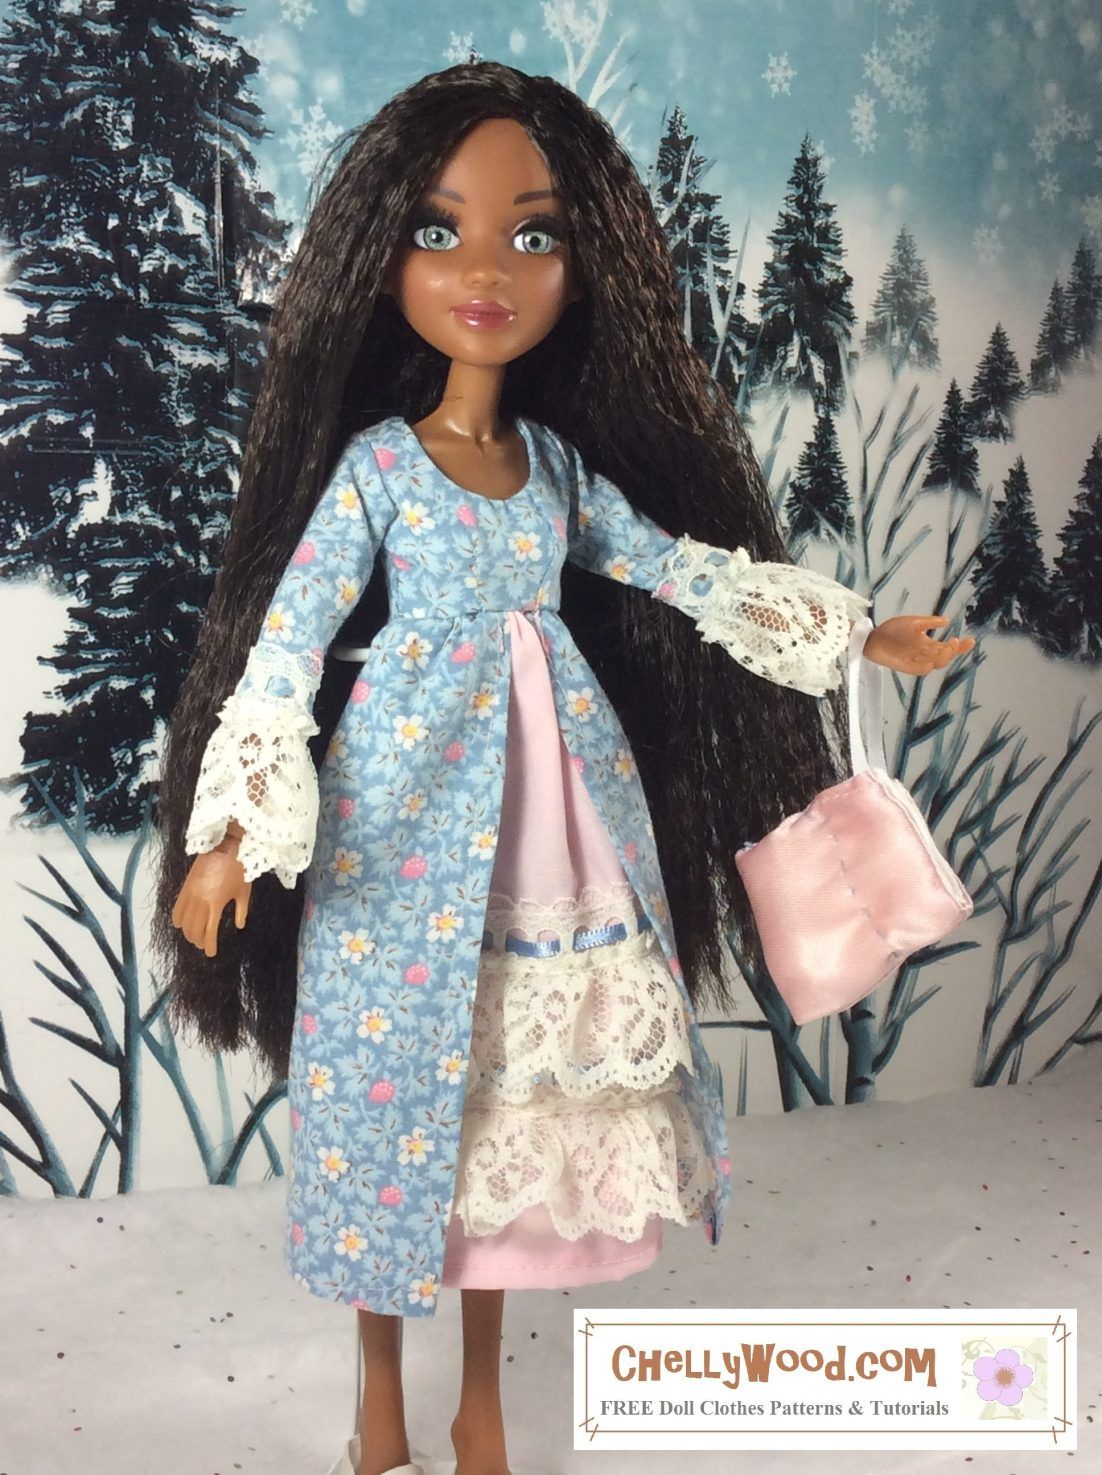 Project mc2 doll clothes free printable sewing patterns at project mc2 doll clothes free printable sewing patterns at chellywood jeuxipadfo Gallery